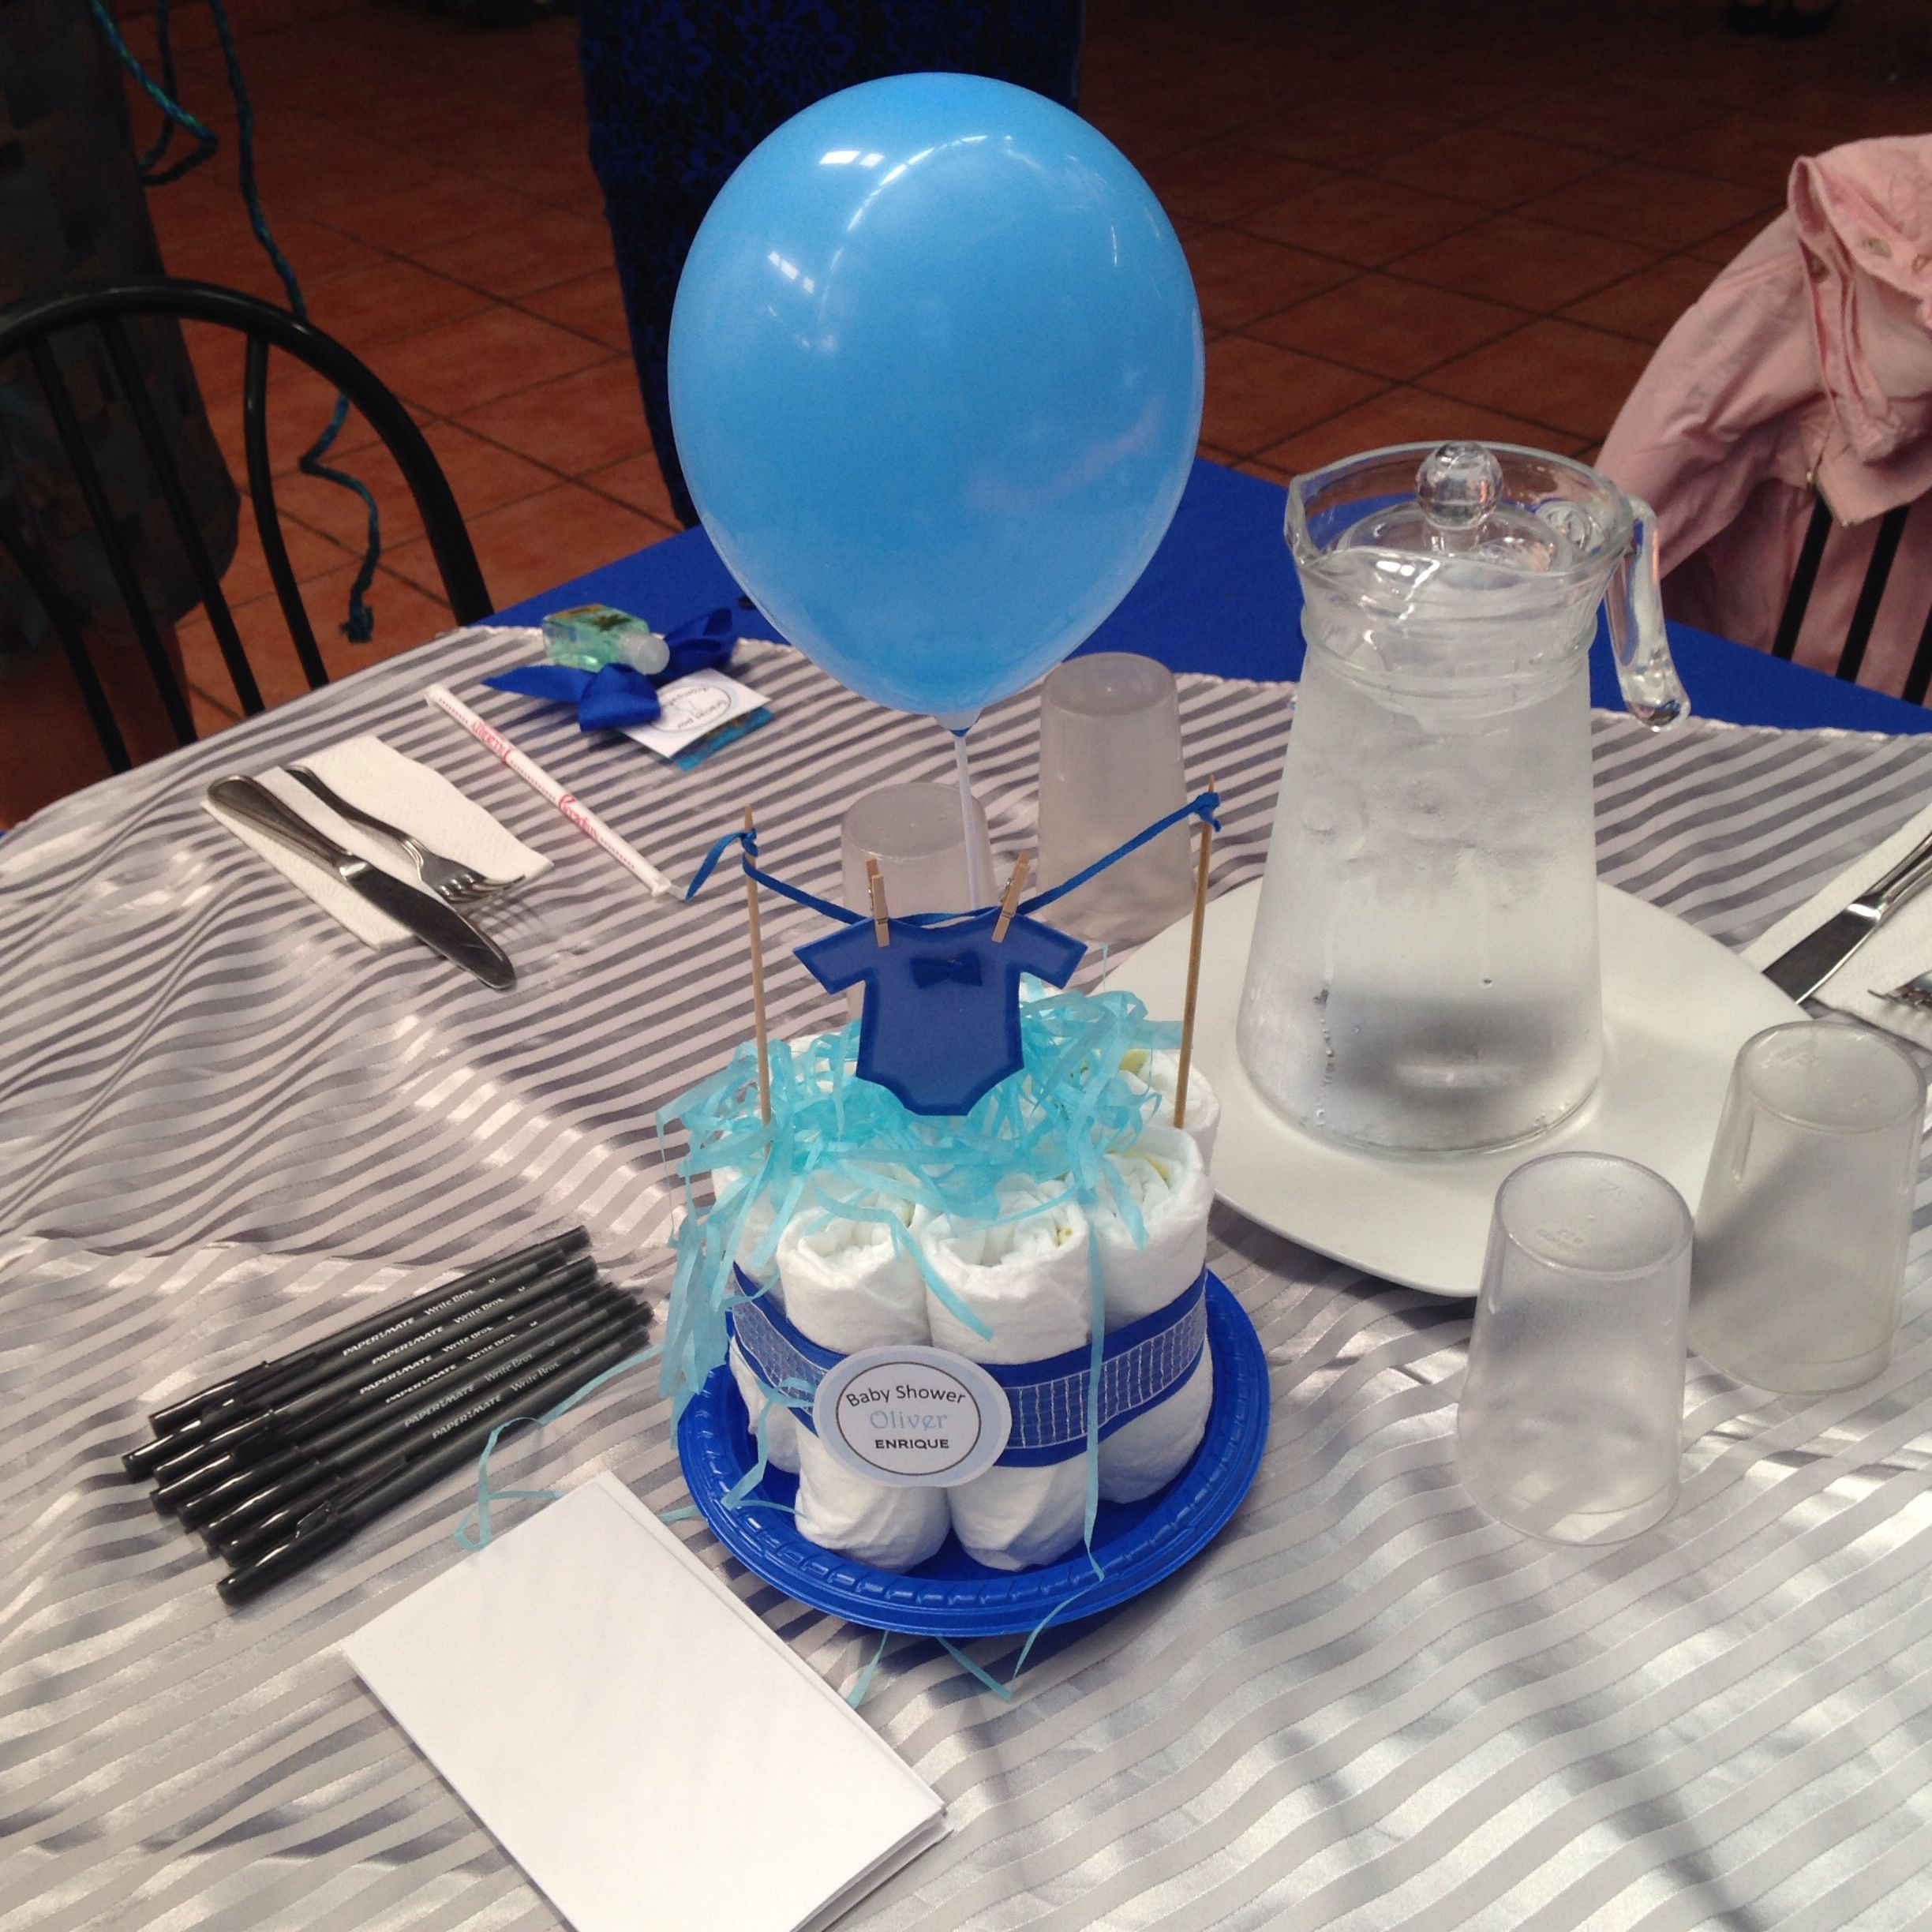 Little man baby shower centerpiece !